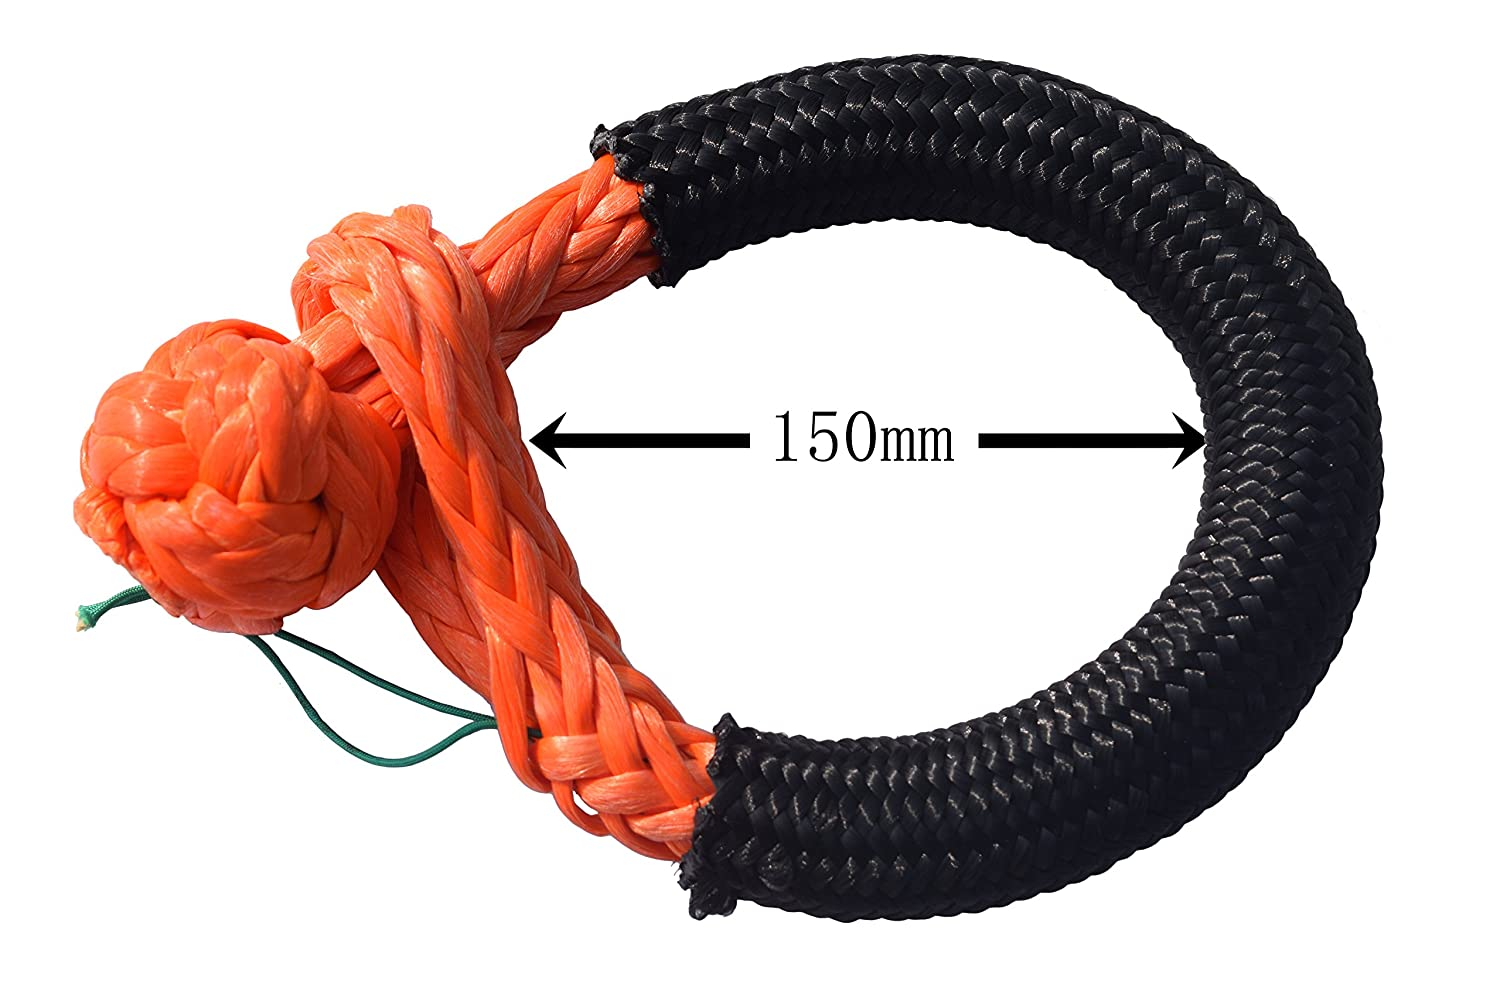 12mm150mm Soft Shackle for Off-Road ATVs UTVs Synthetic Rope Winch Bumper Shackle ATV Winch Shackle